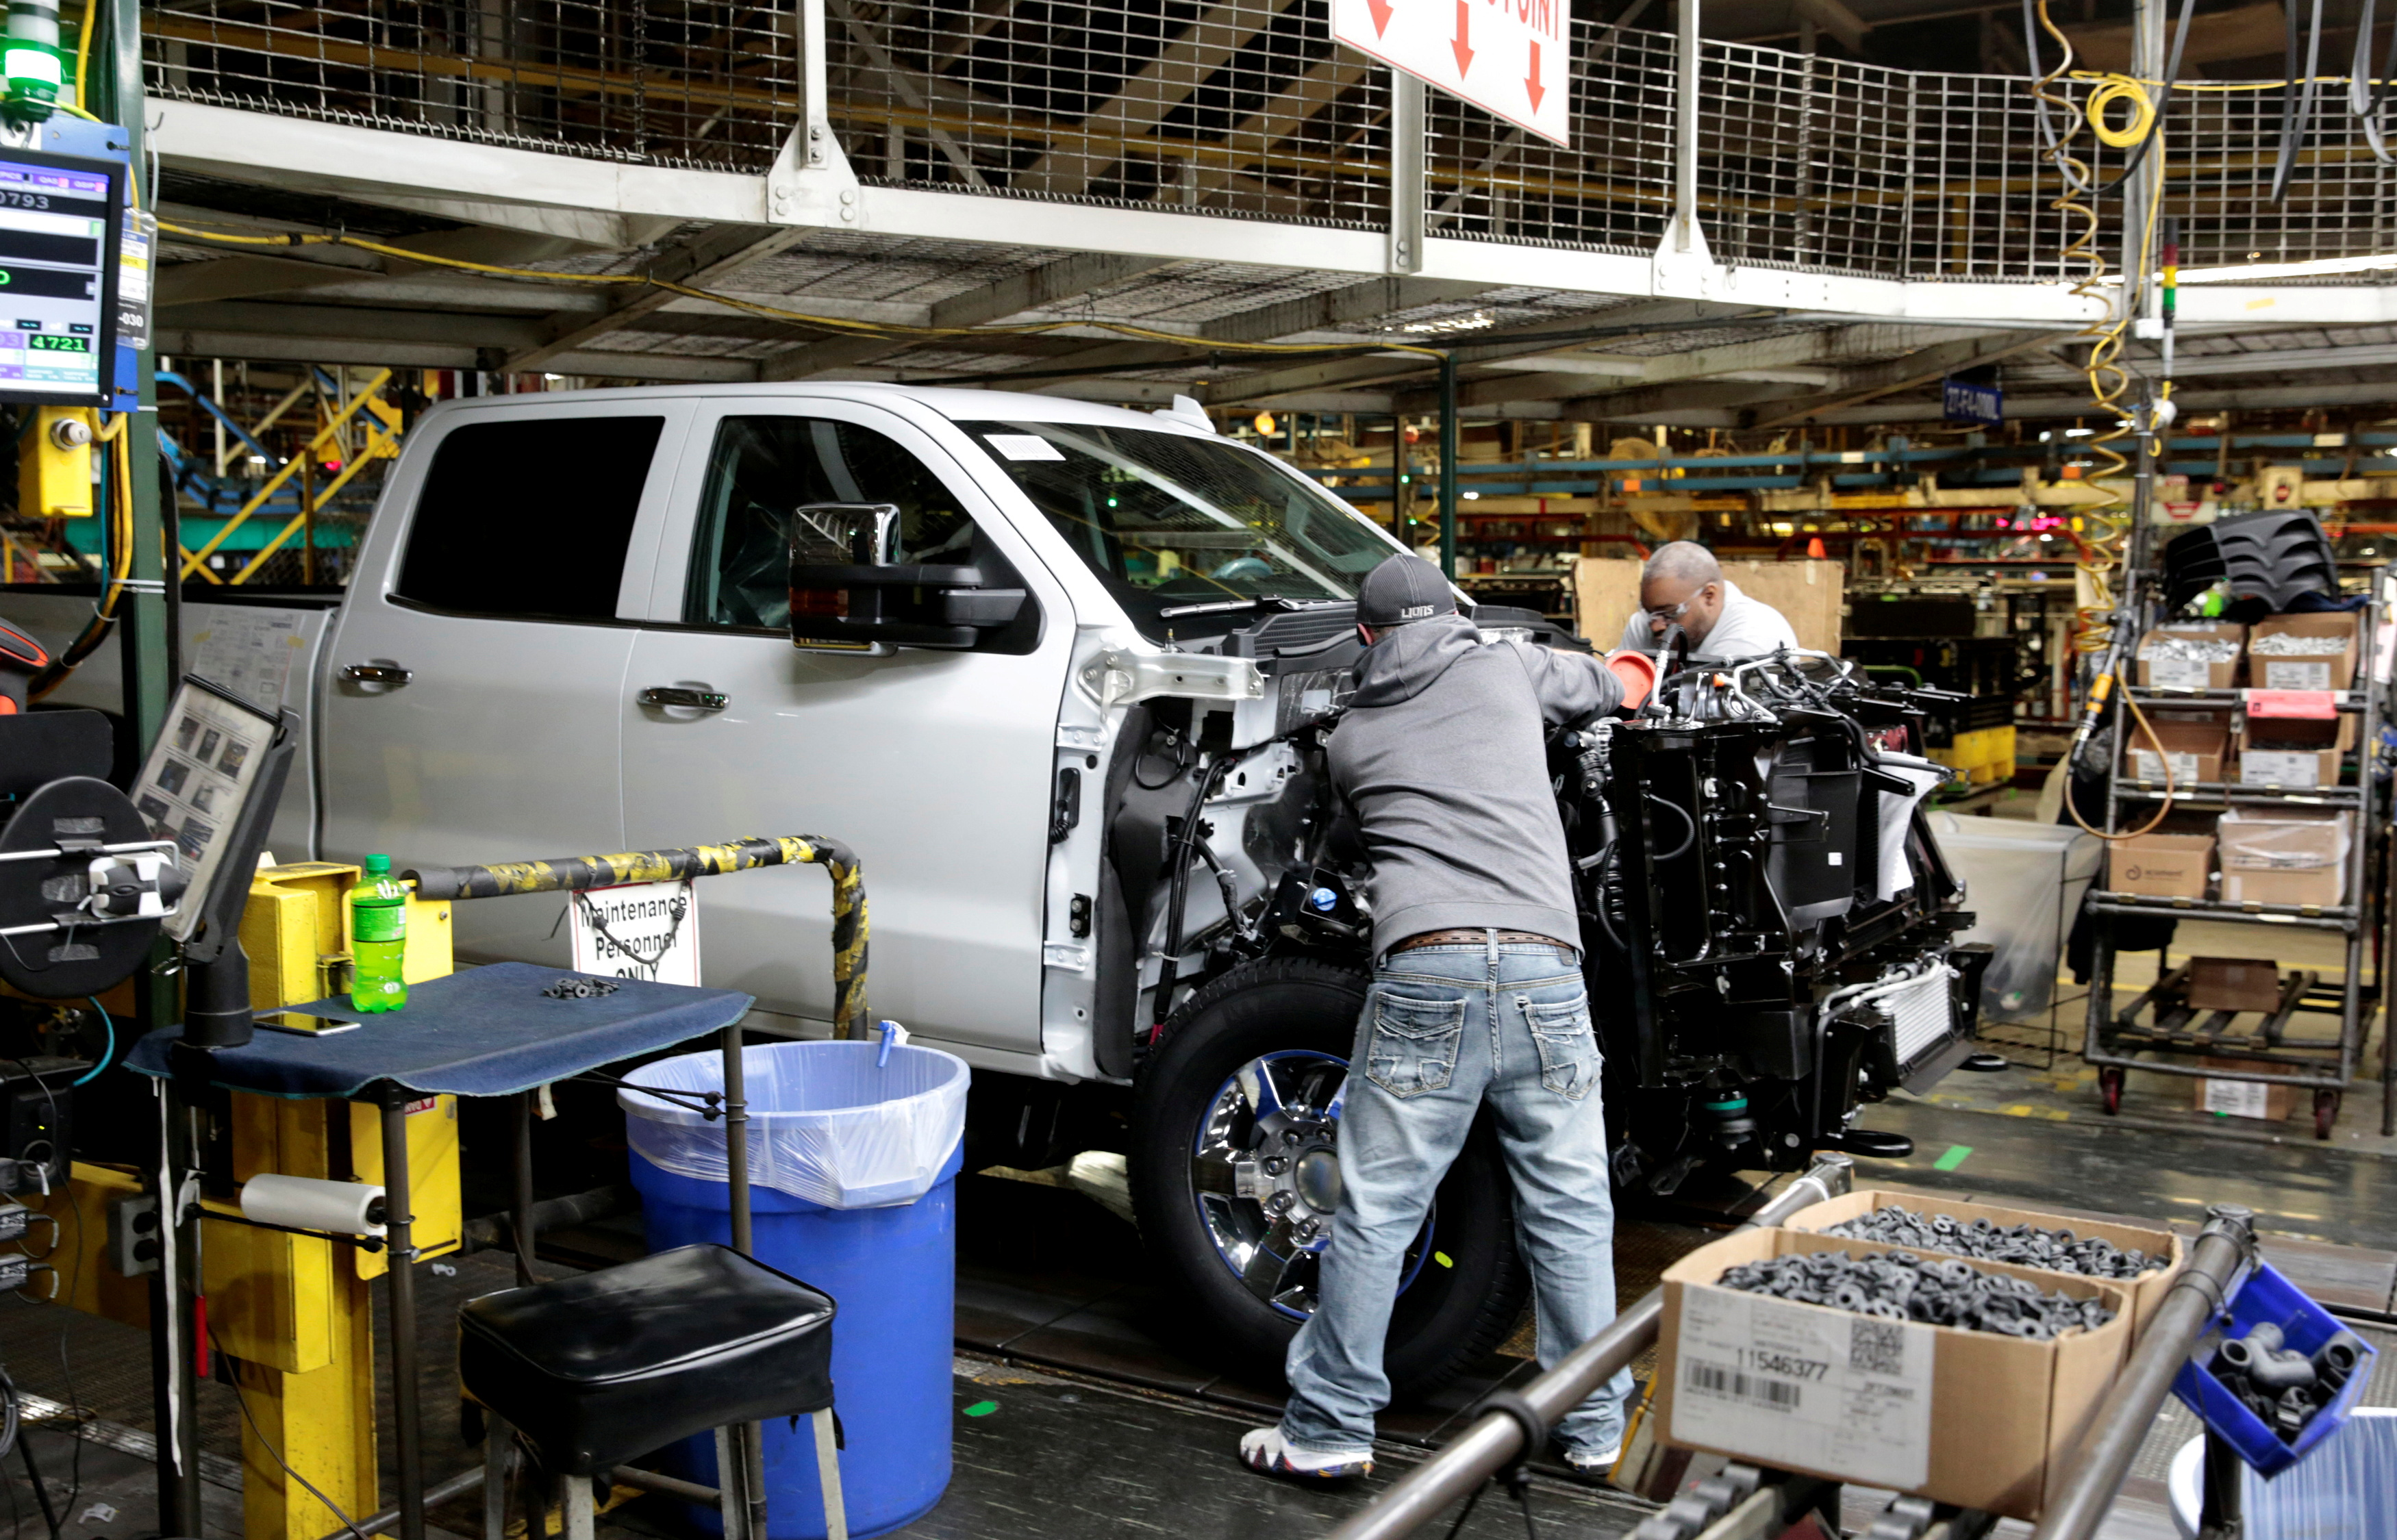 General Motors assembly workers work on Chevrolet 2019 heavy-duty pickup trucks at the General Motors Flint Assembly Plant in Flint, Michigan, U.S. February 5, 2019. REUTERS/Rebecca Cook/File Photo